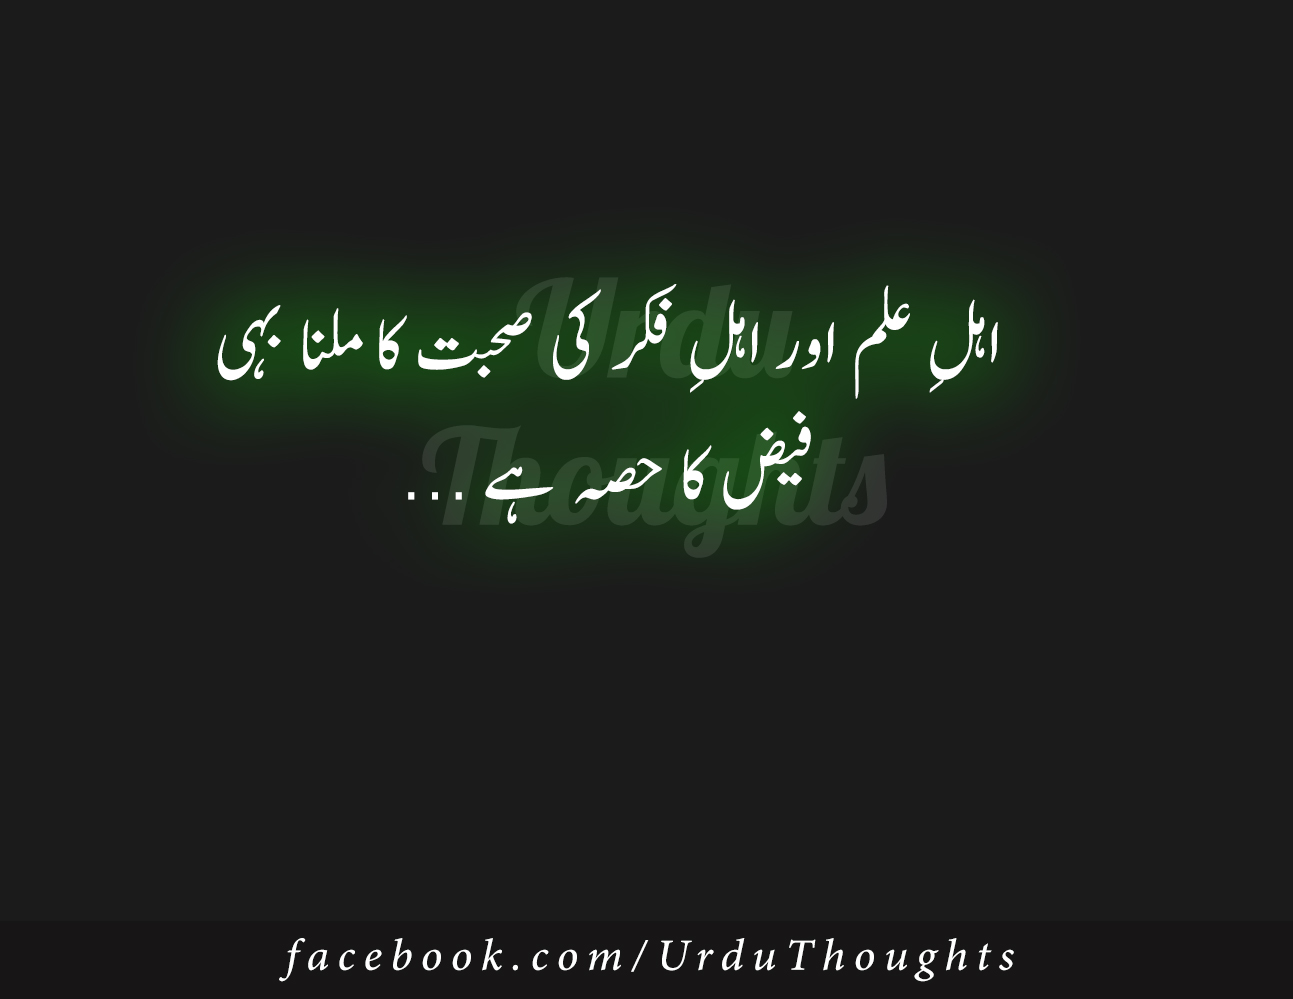 Sad Wallpapers With Quotes In Urdu 10 Meaningful Quotes Inspiration Urdu Pearls Of